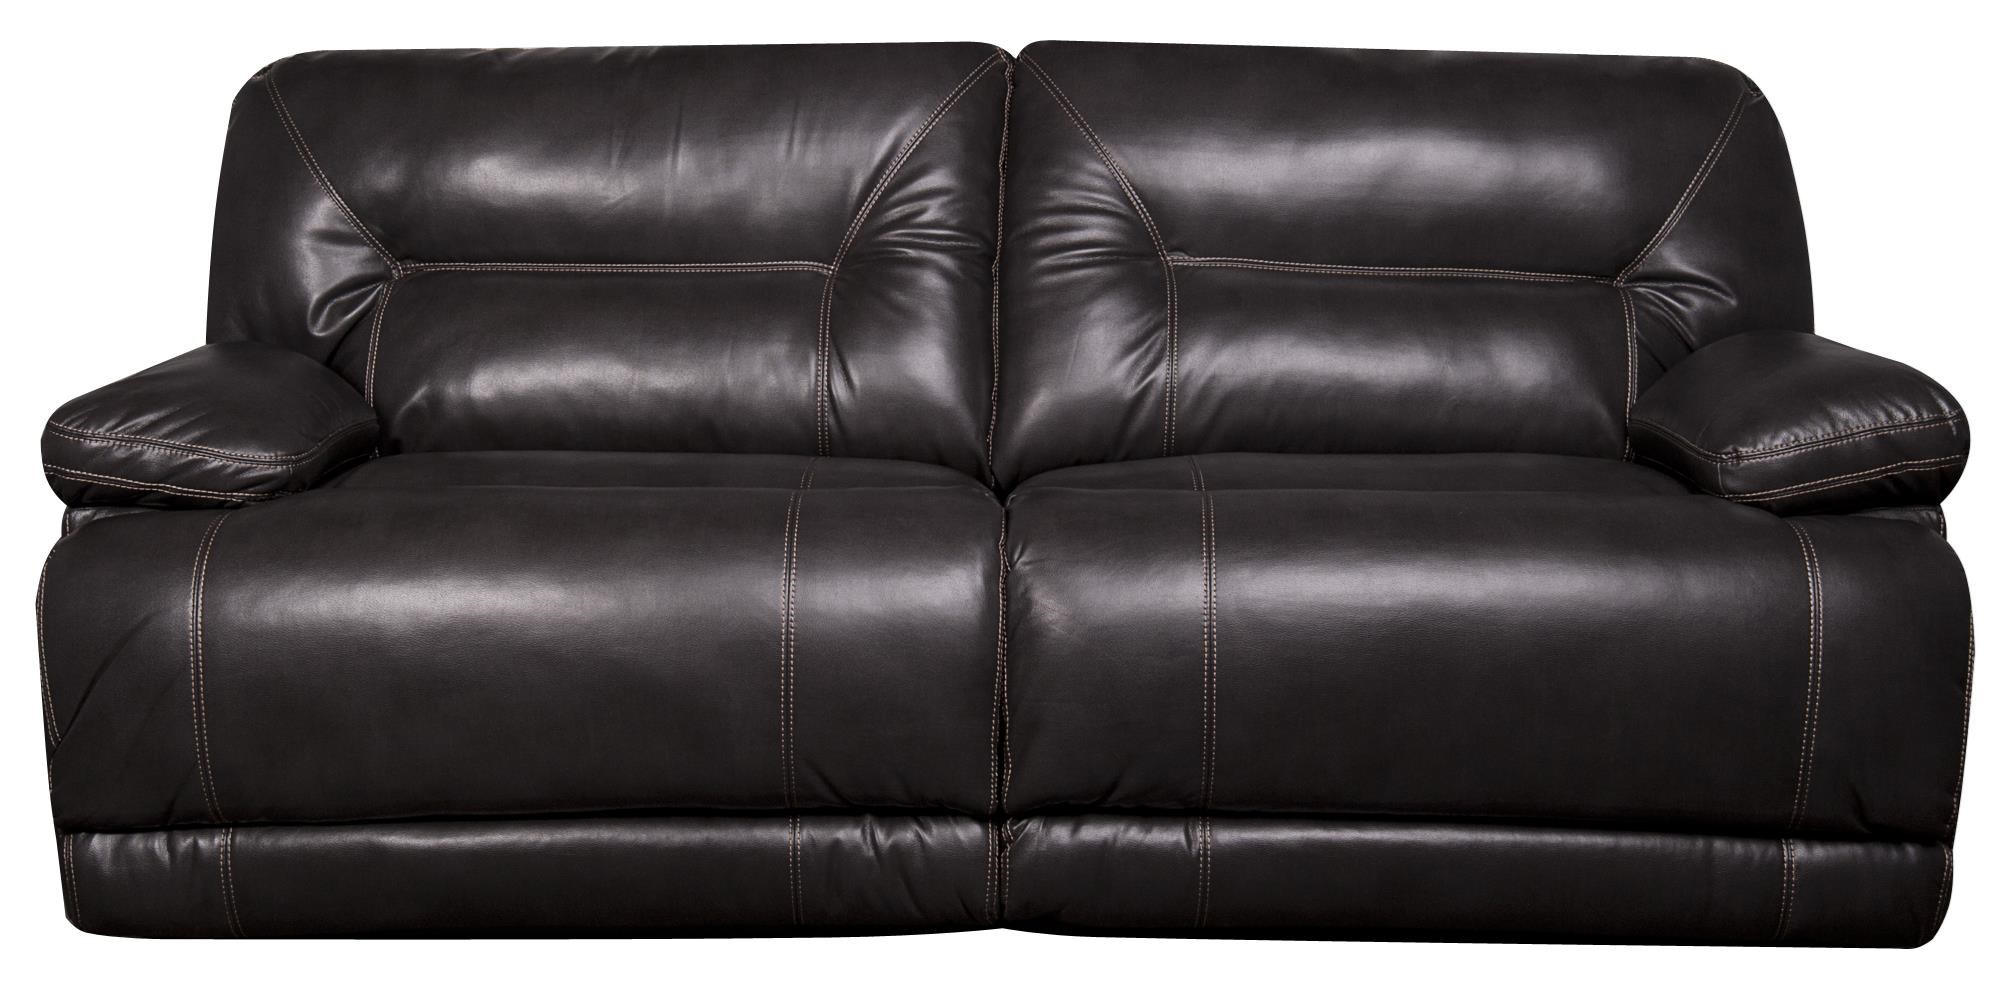 Morris Home Furnishings Fielding Fielding Power Reclining Sofa - Item Number: 137538992